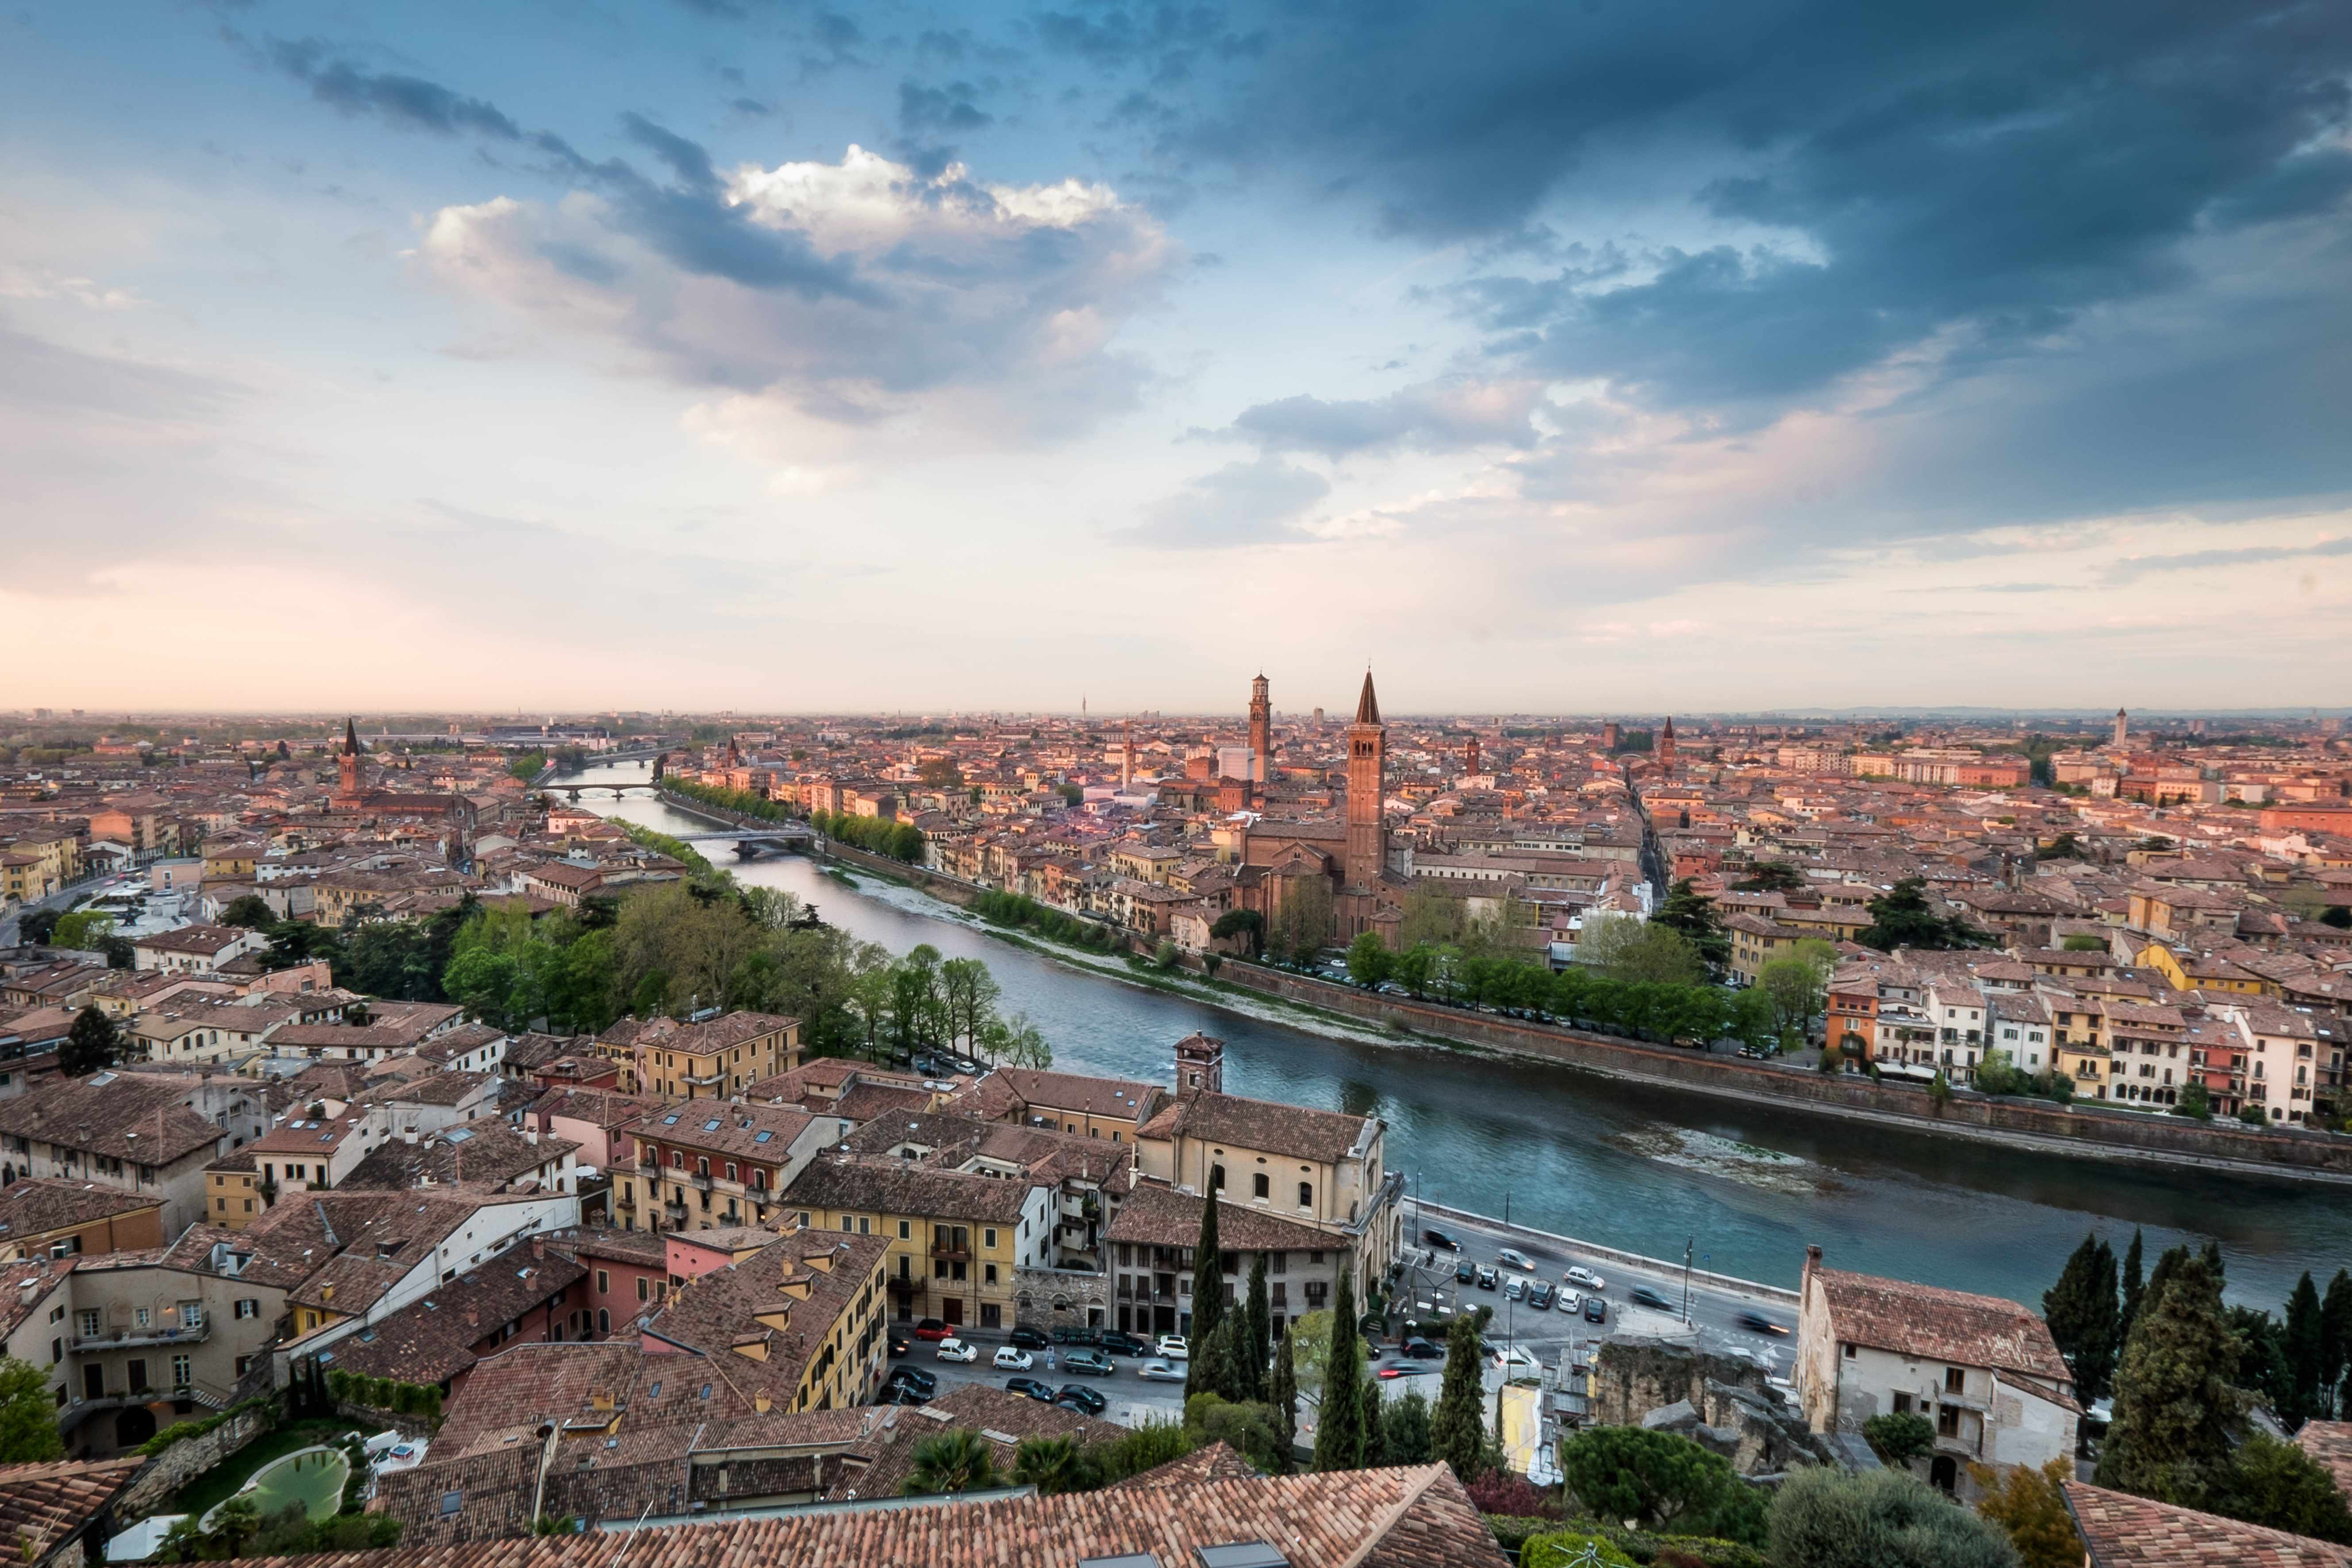 Verona skyline with river Adige, bridges, Santa Anastasia Church and Torre dei Lamberti or Lamberti Tower at dawn view from Castel San Pietro, Italy. (Getty Images)